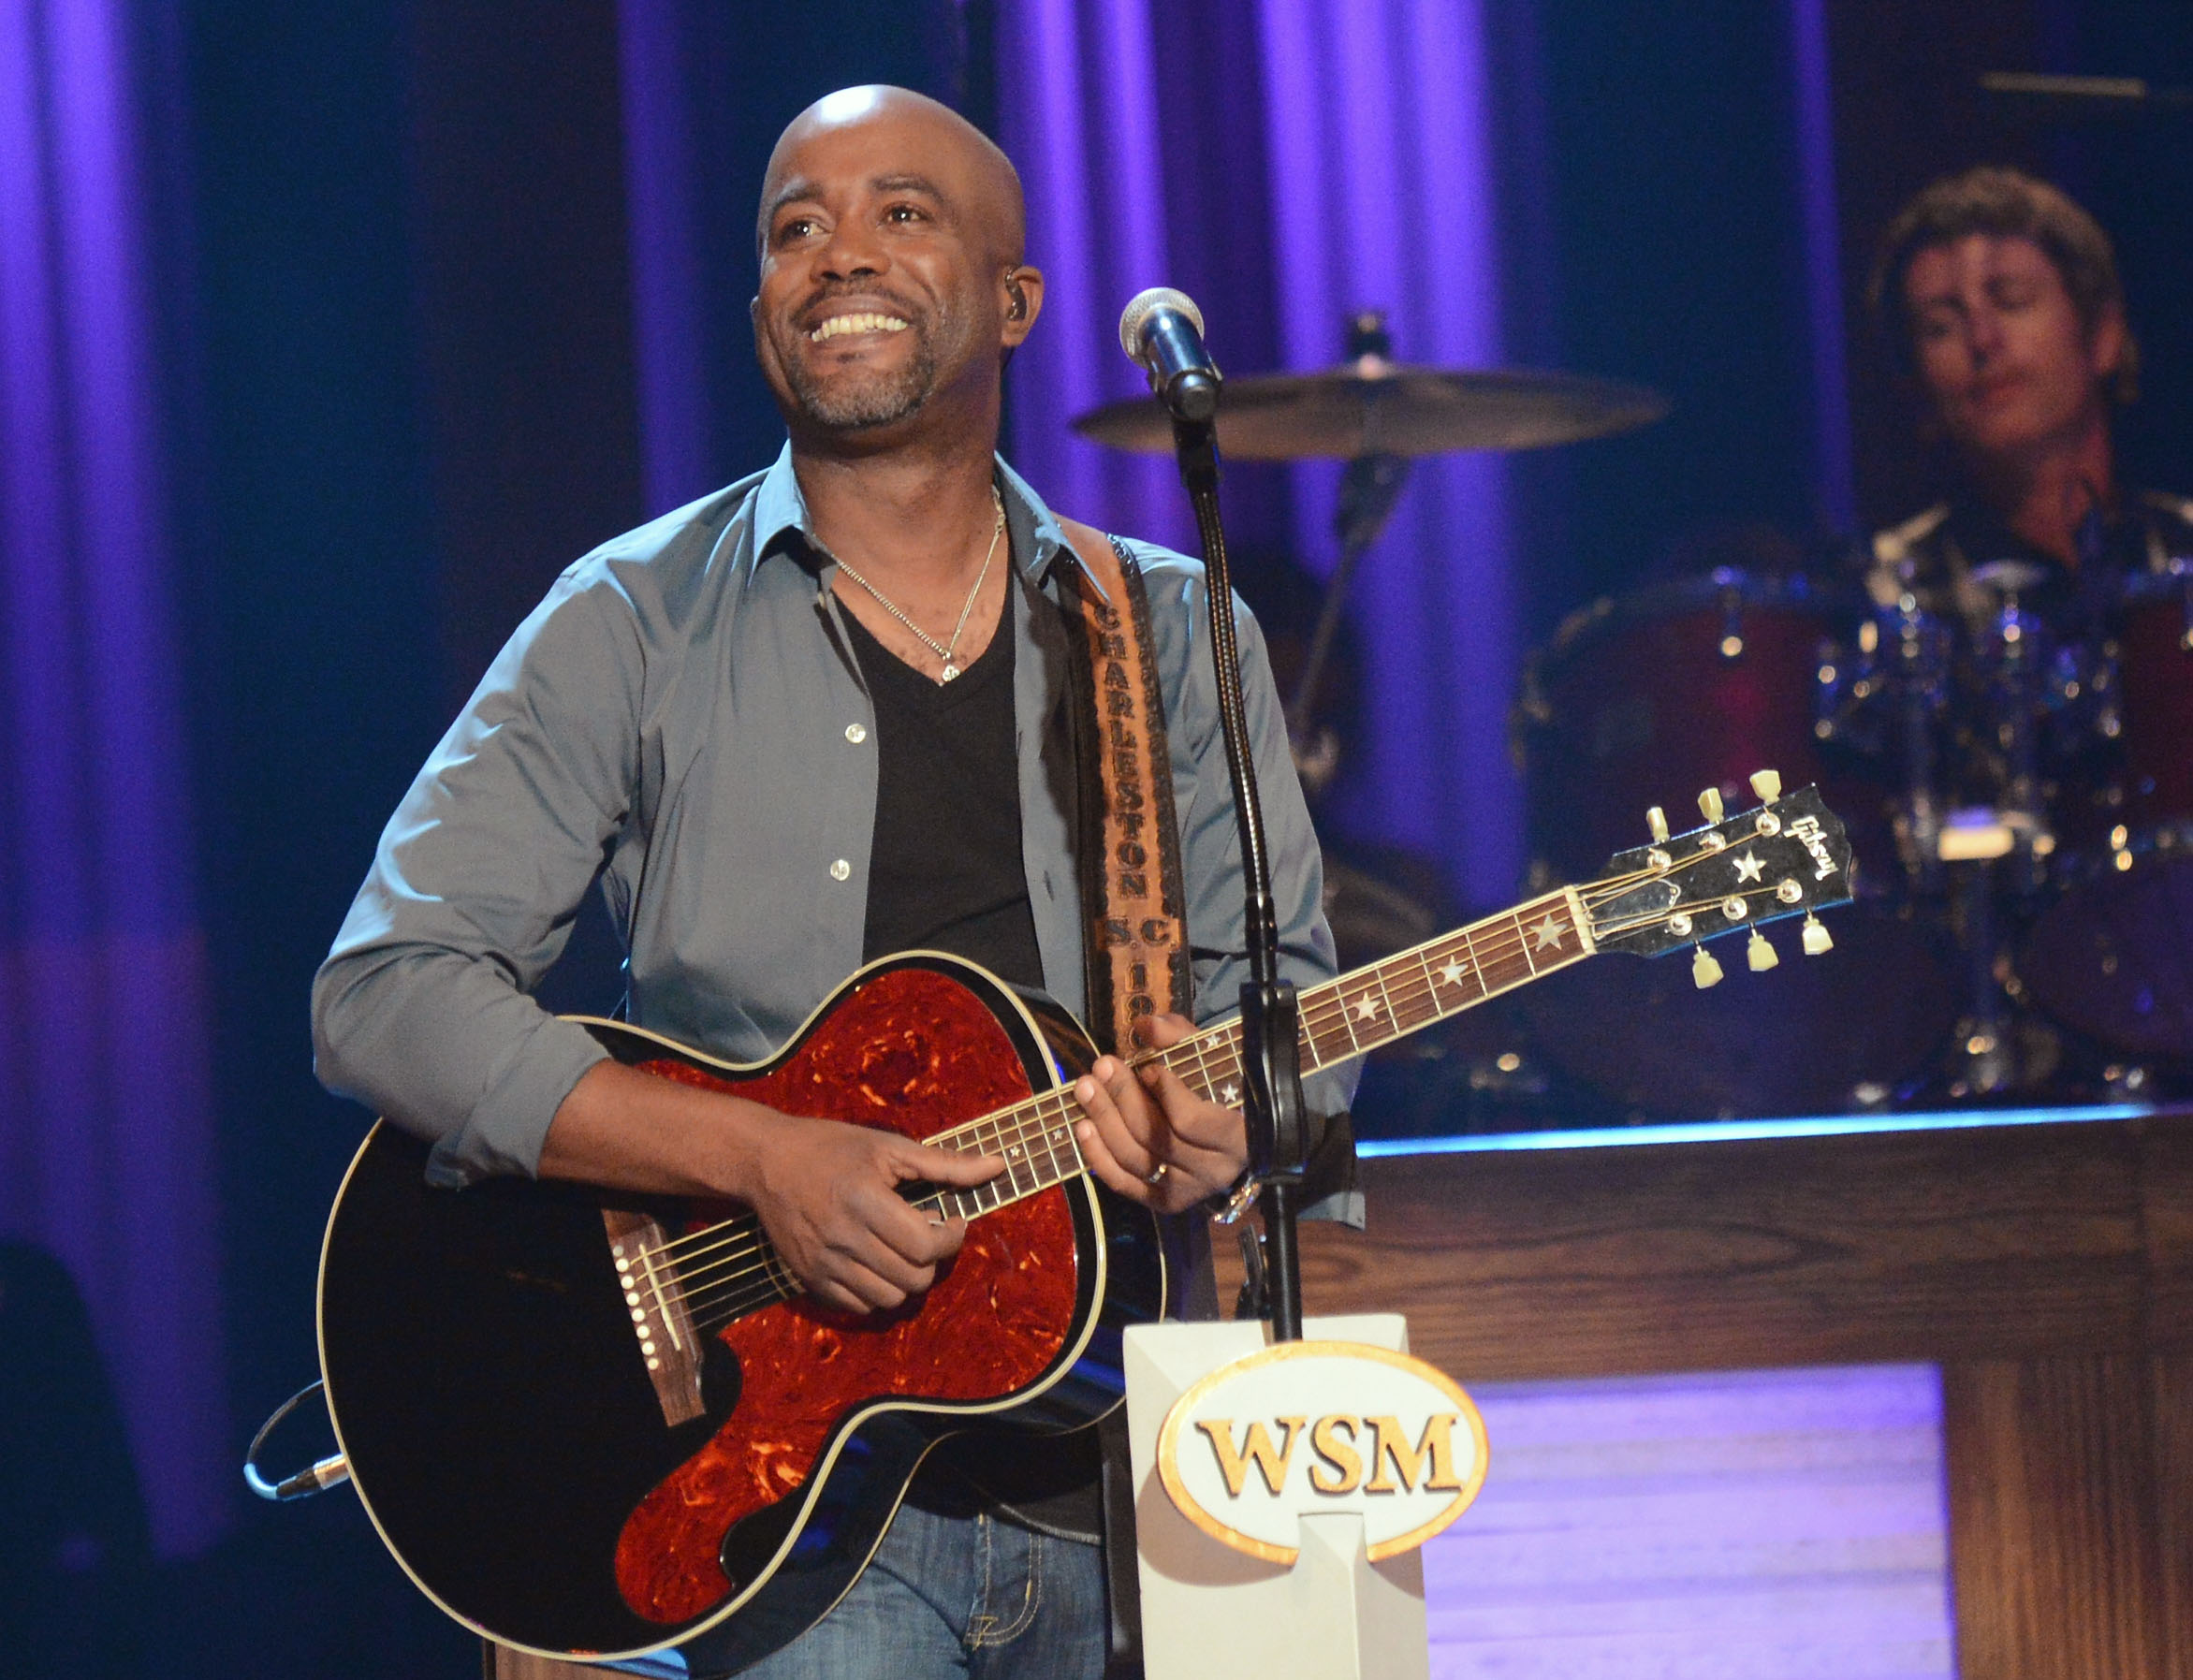 darius rucker wikidarius rucker - wagon wheel, darius rucker - if i told you, darius rucker this, darius rucker candy cane christmas, darius rucker wagon wheel mp3, darius rucker alright, darius rucker this lyrics, darius rucker - homegrown honey, darius rucker if i had wings lyrics, darius rucker - this is my world, darius rucker feat. adele, darius rucker don't think, darius rucker wife, darius rucker radio, darius rucker so i sang, darius rucker need you now, darius rucker songs, darius rucker wiki, darius rucker if i told, darius rucker - if i told you lyrics